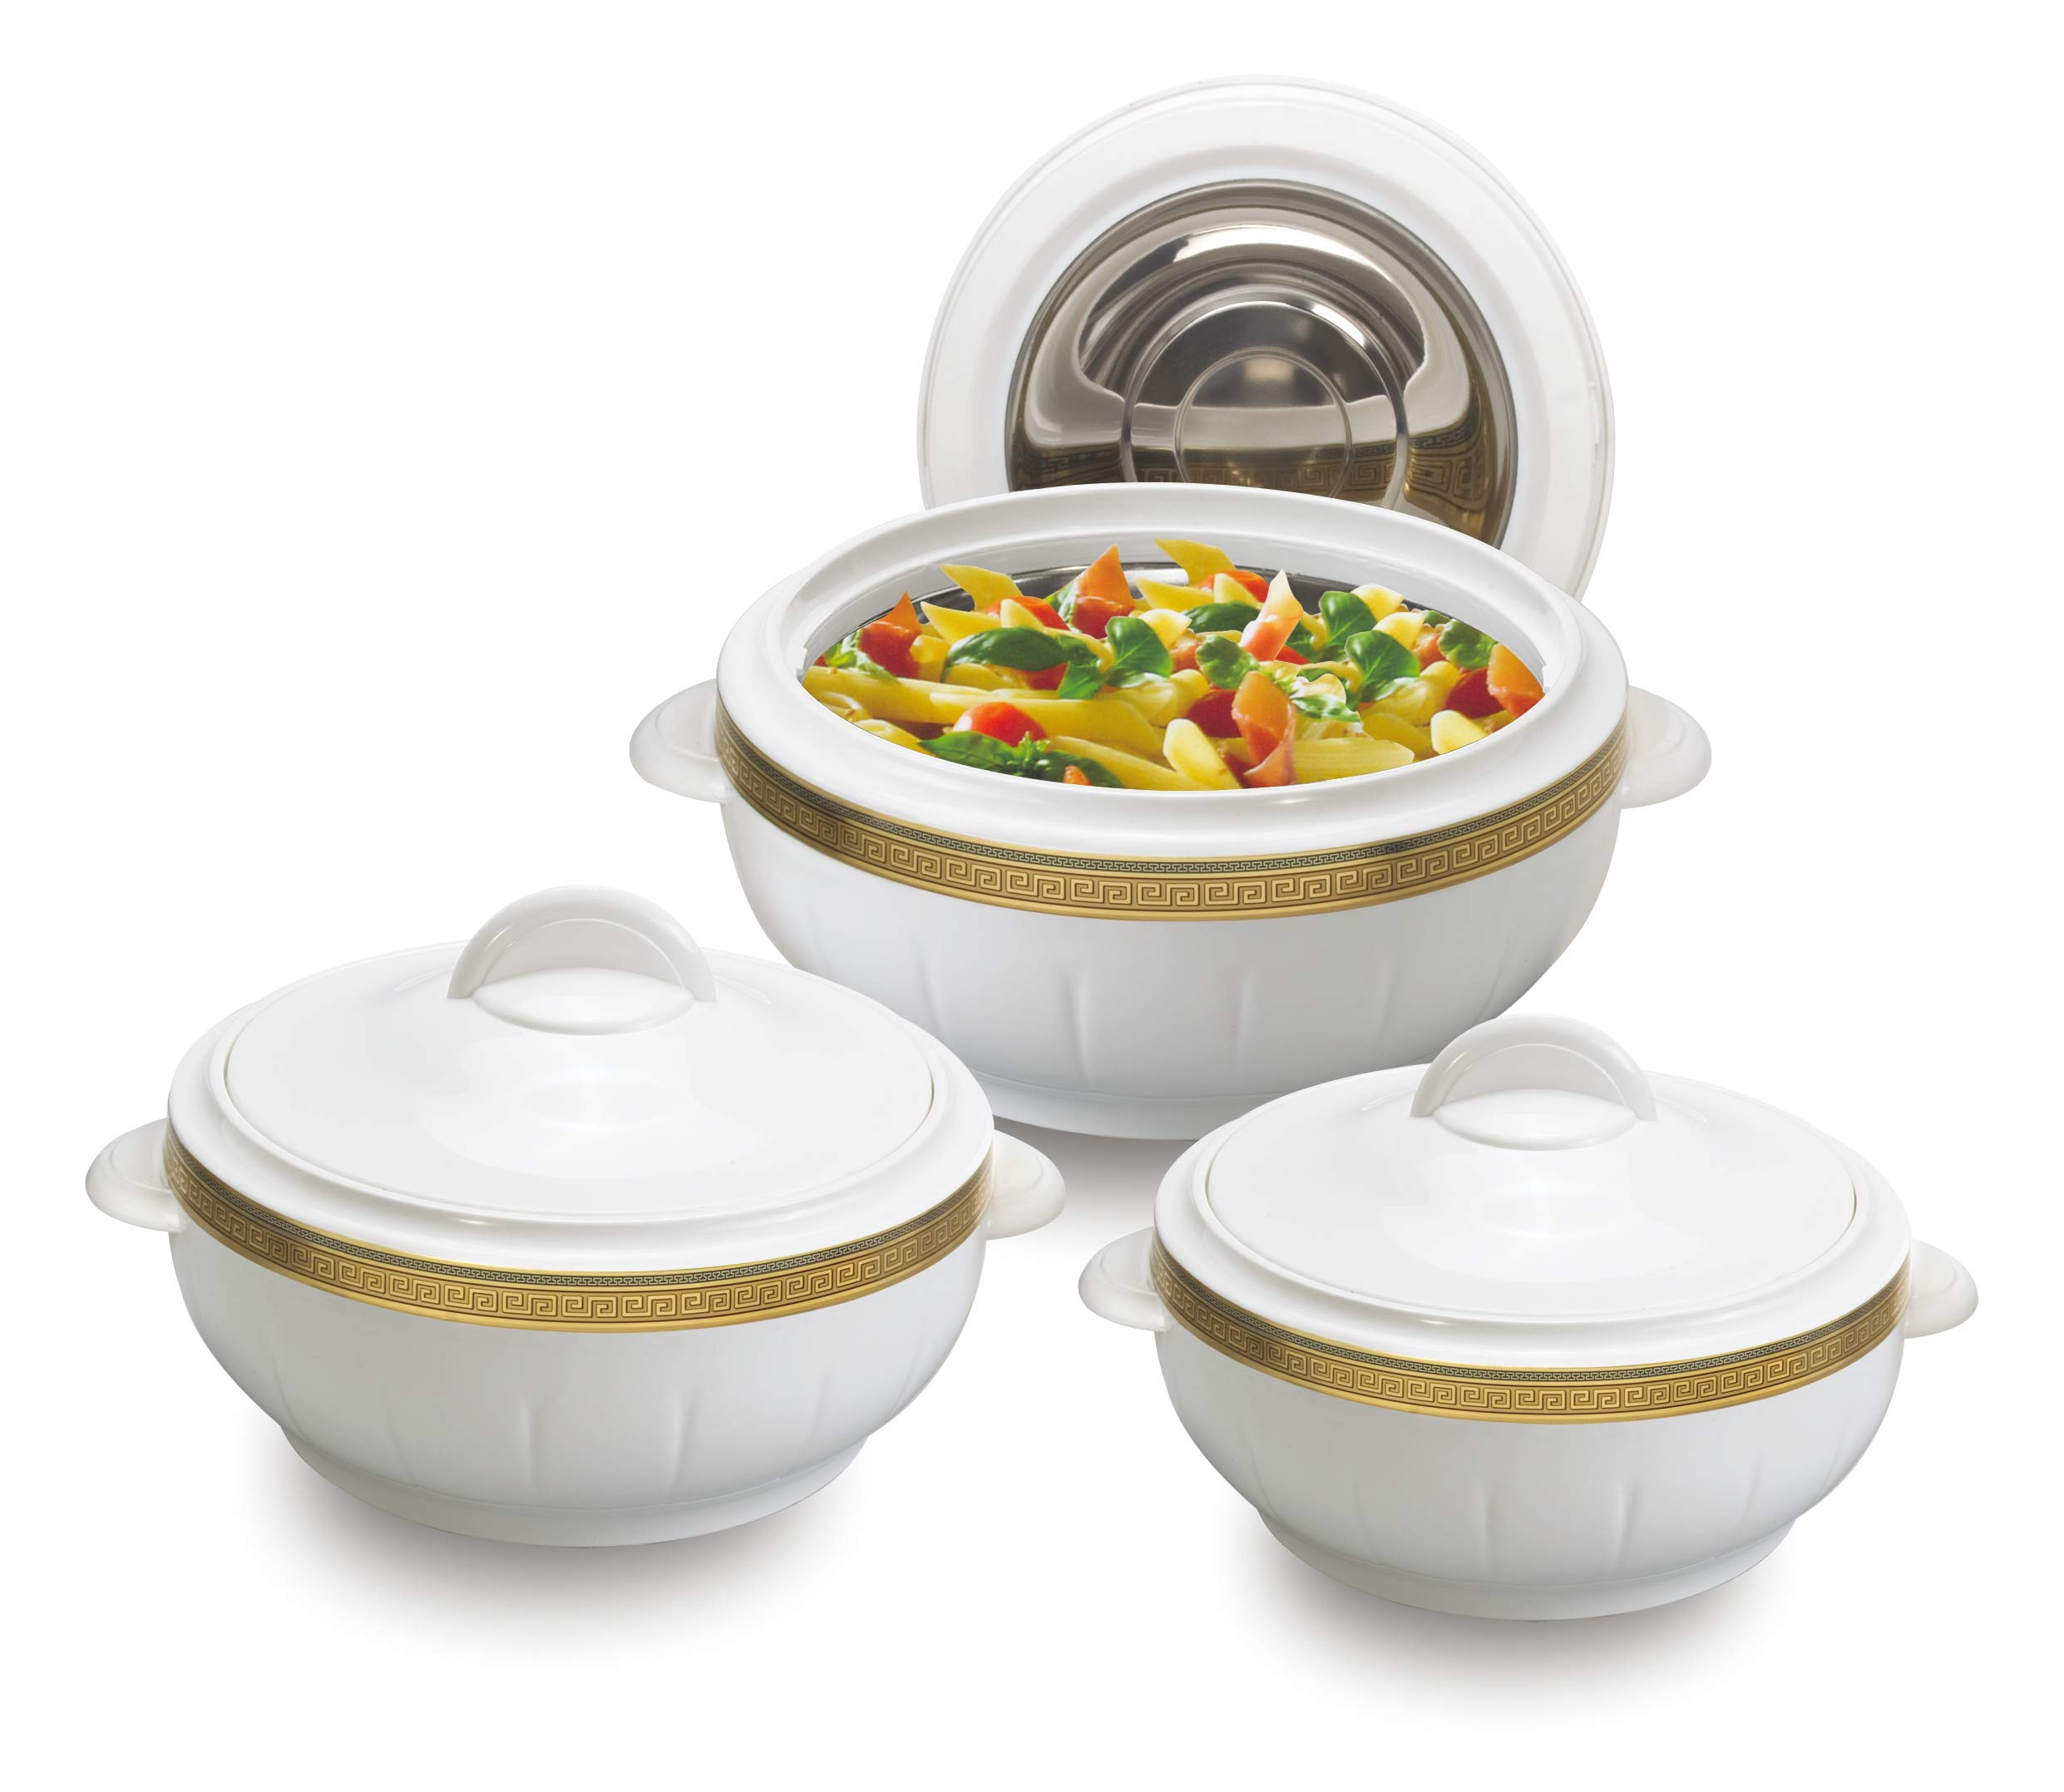 Kitchen Cocina - 3pcs Hot Pot Set Casserole Set - 3 Sizes: 1.6L + 2.5L + 3.5L - Stainless Steel Inside - Keeps Steaming Hot - Durable - Easy to Clean - White